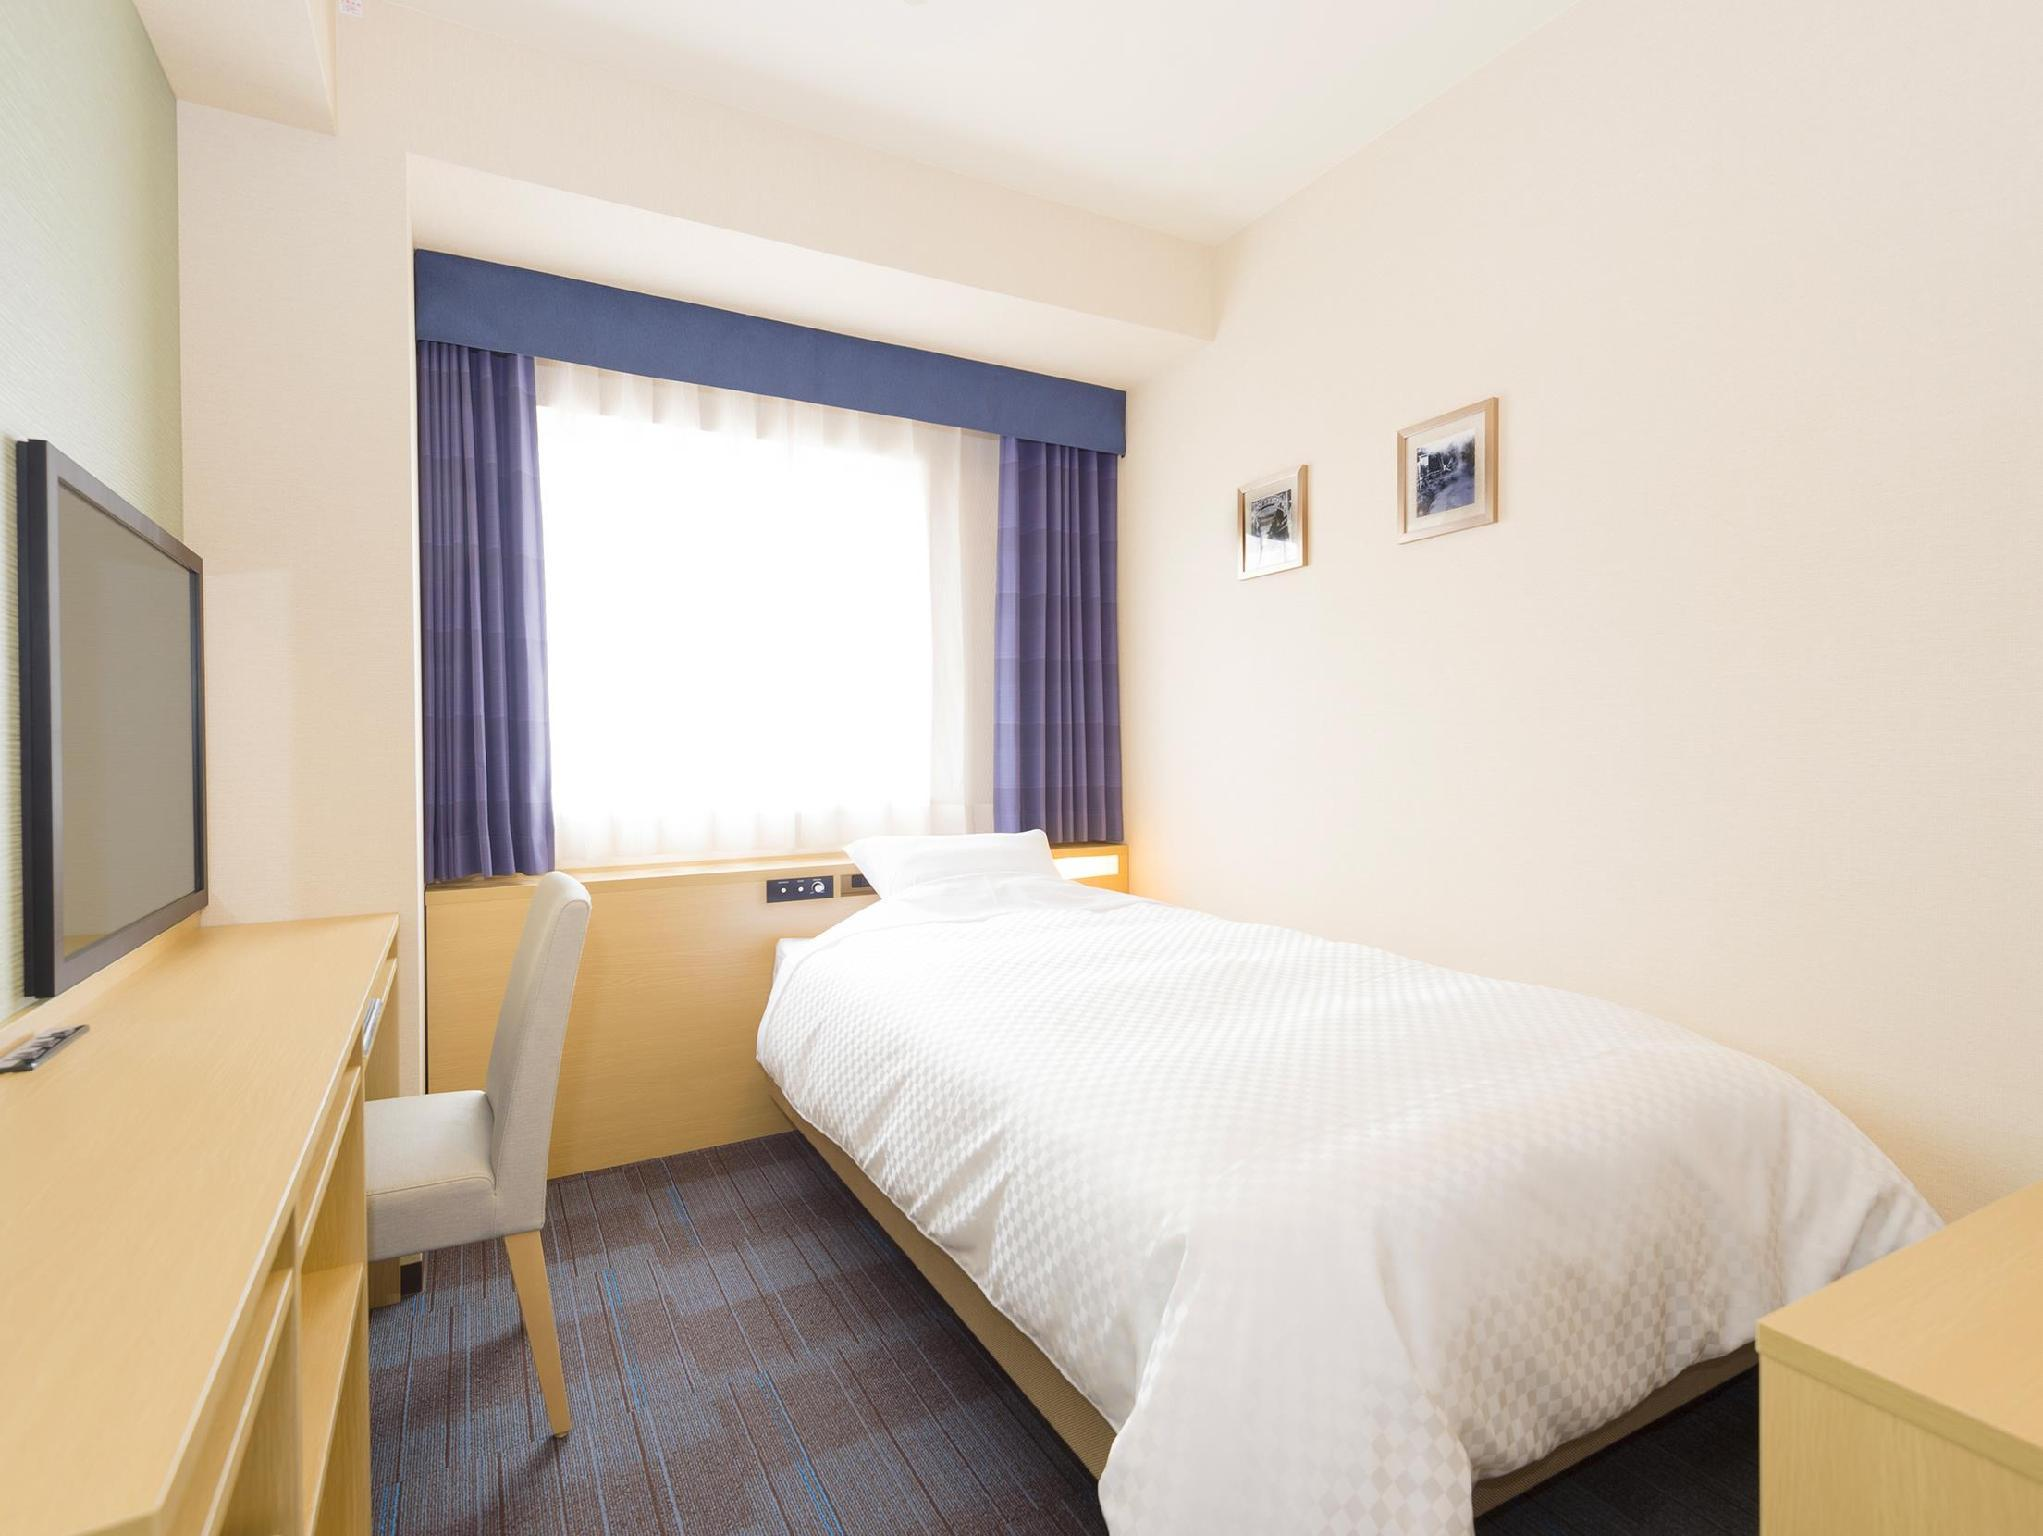 스탠다드 싱글 (금연) (Standard Single Non - Smoking)